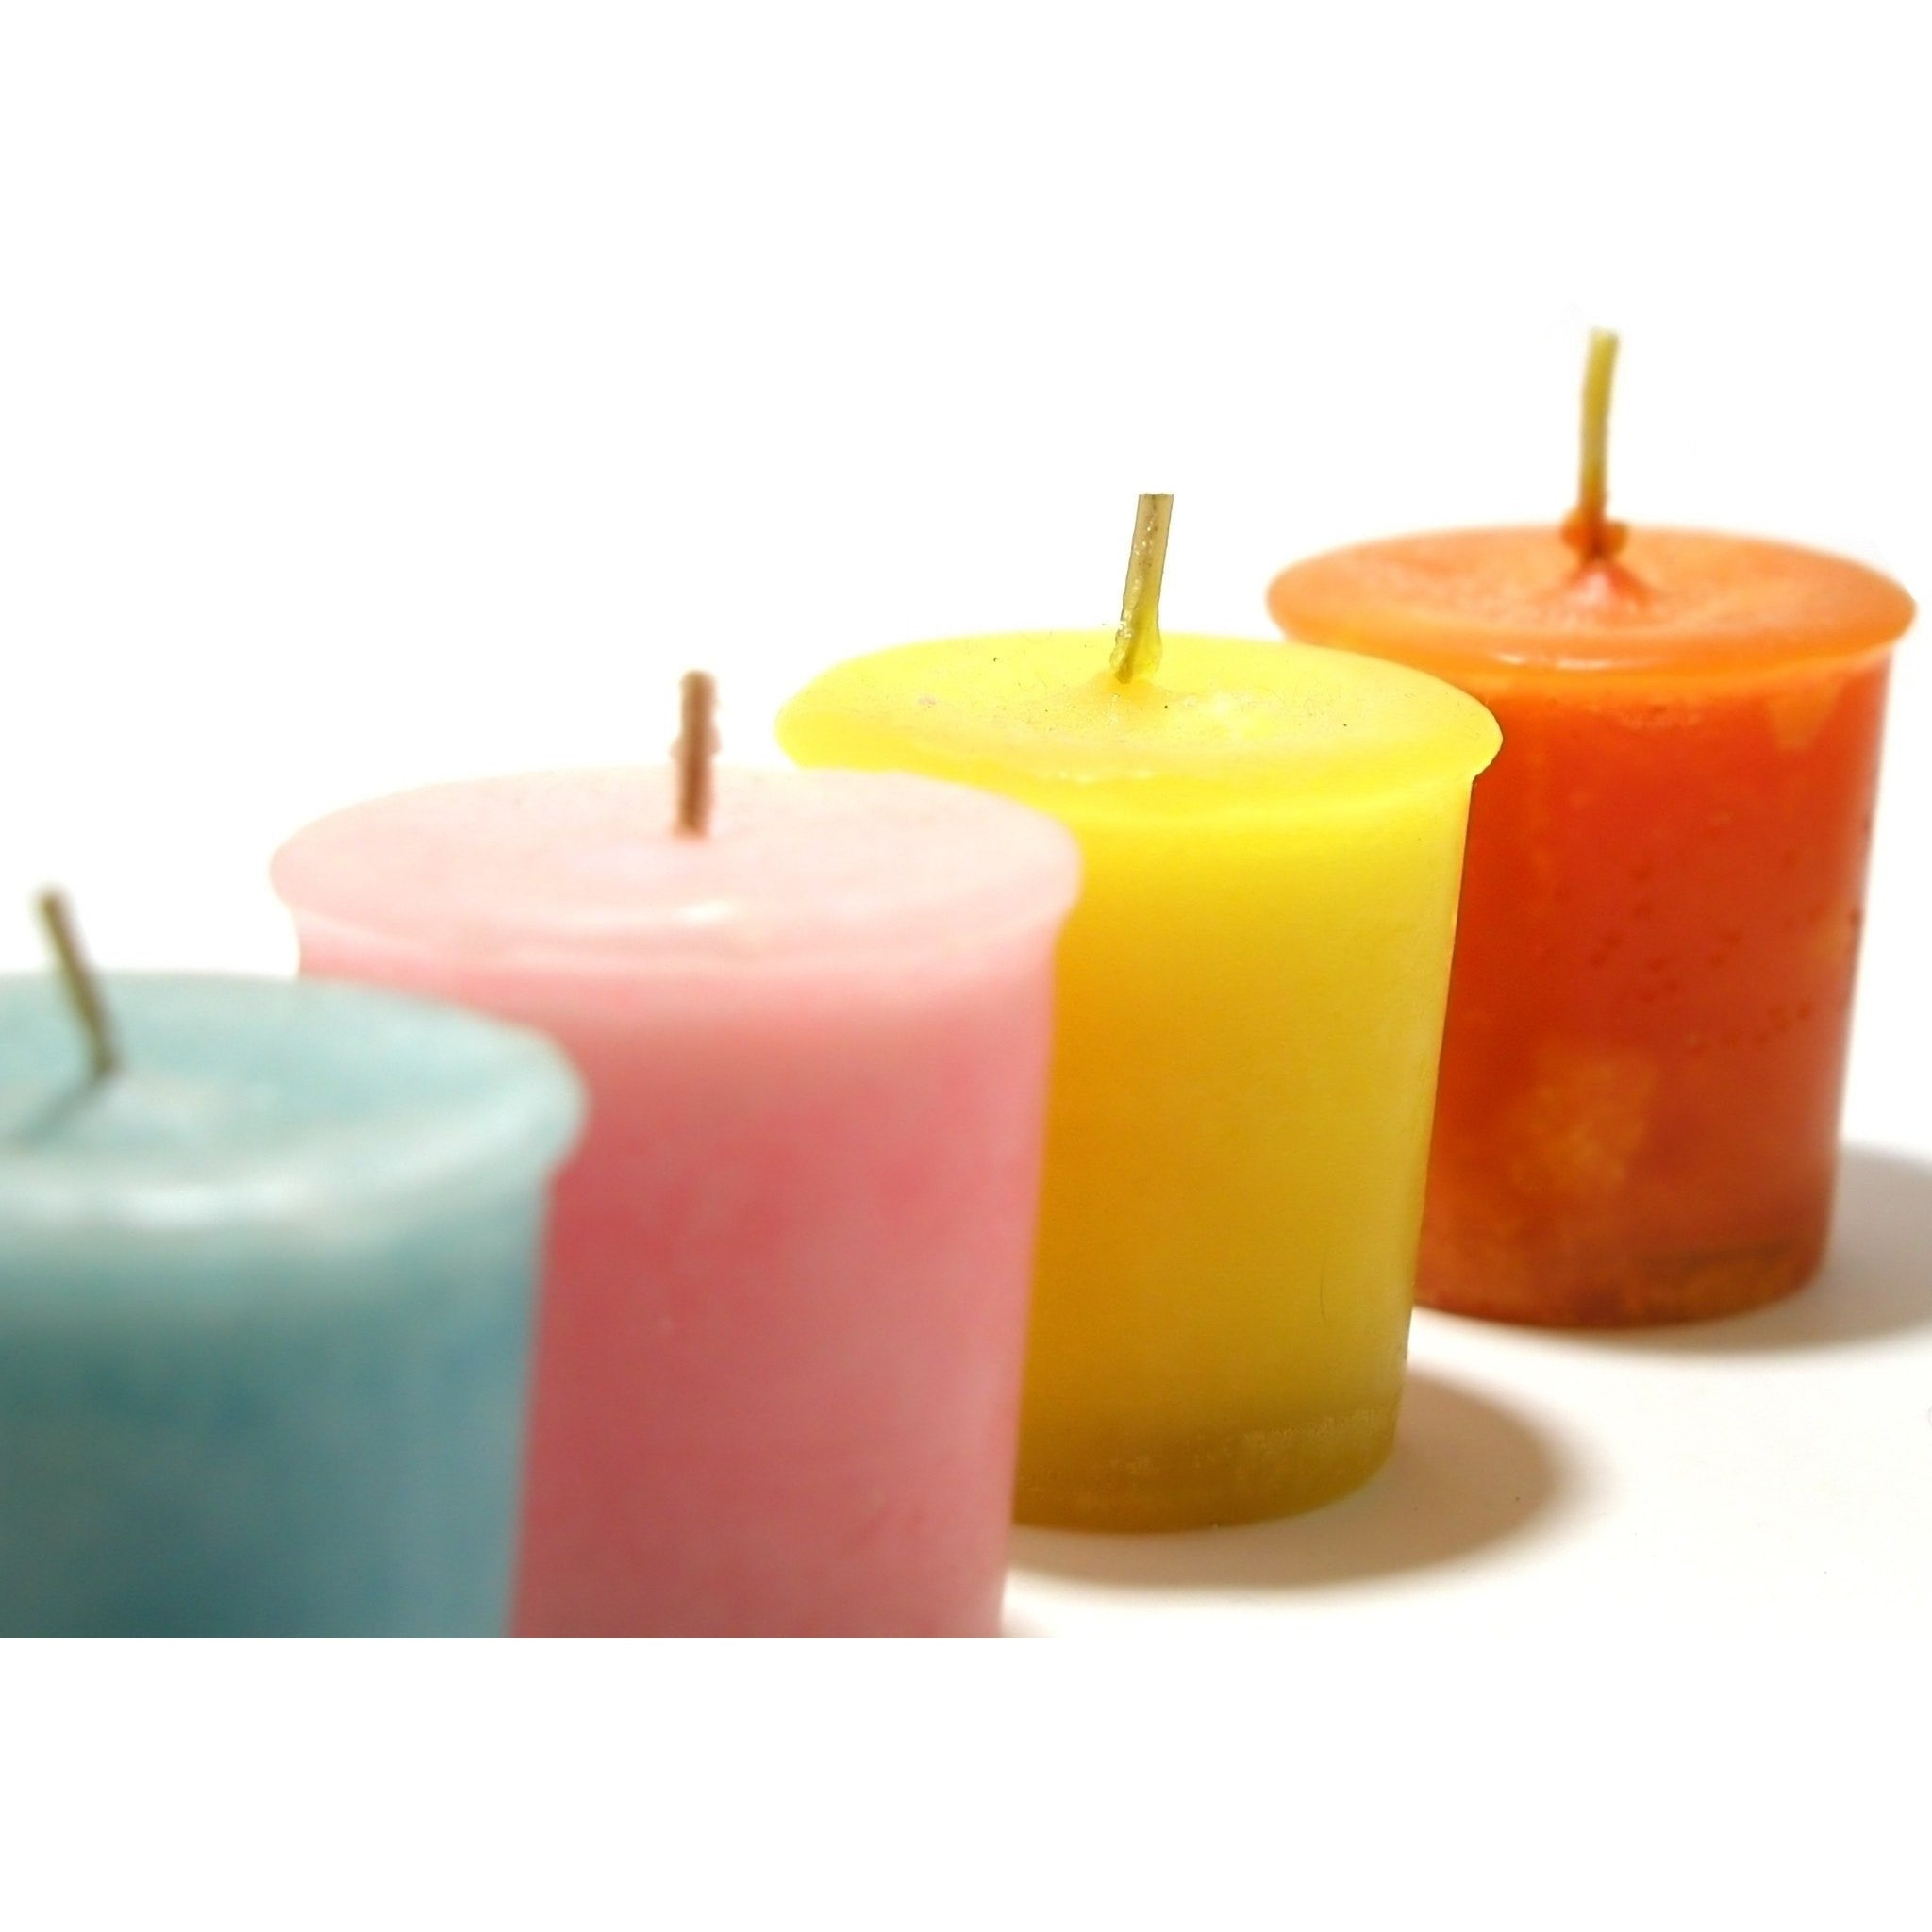 Bella Vanilla-Chai Natural Hand Poured Soy Candles - Votive-Single - Bella-Mia Naturals All Natural Soy Candles & Lip Balms - 8